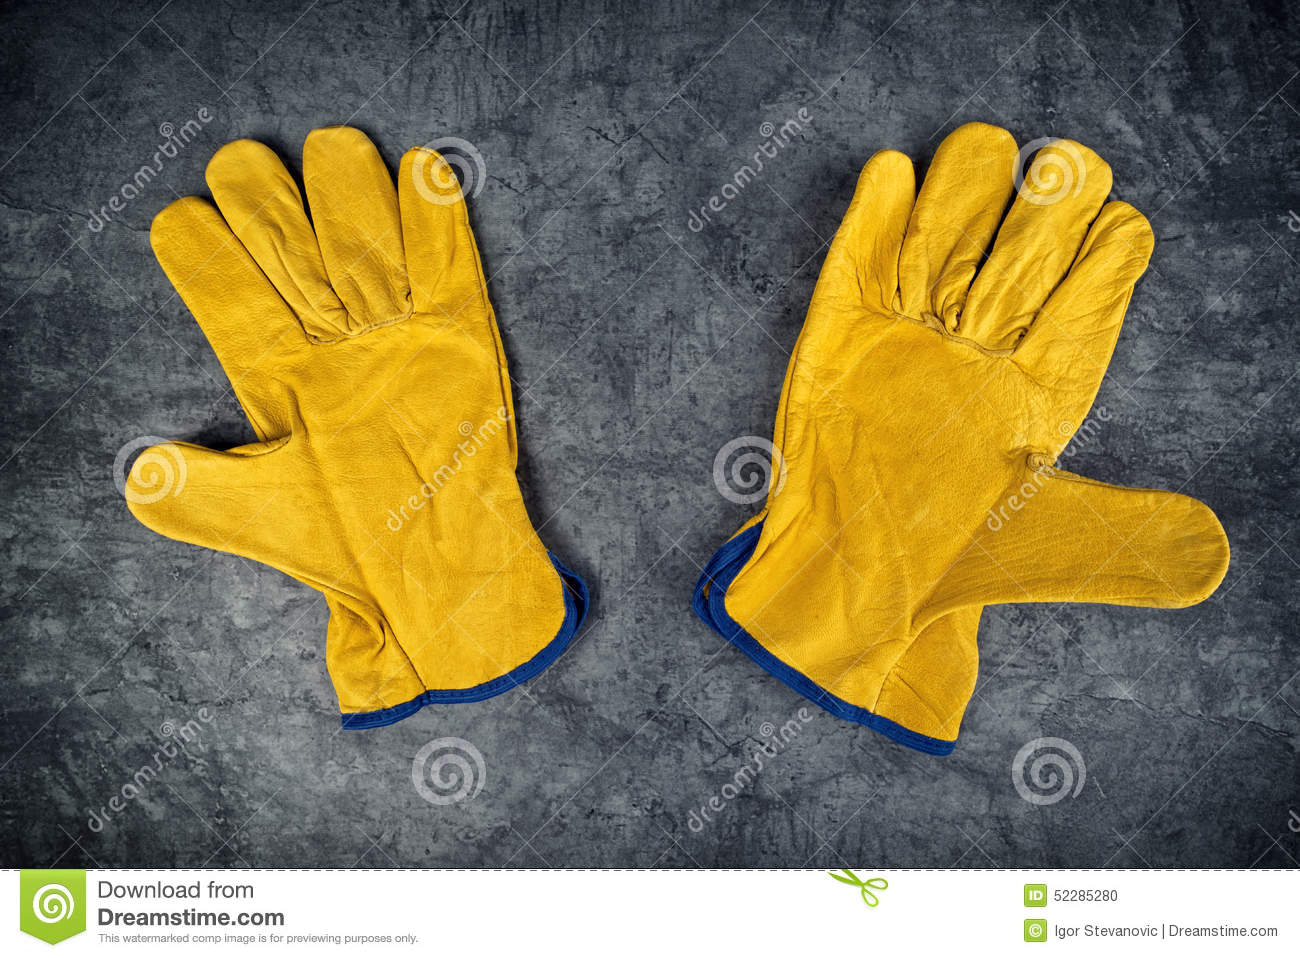 Insulated leather work gloves amazon - Yellow Leather Work Gloves Pair Of Yellow Leather Construction Work Gloves